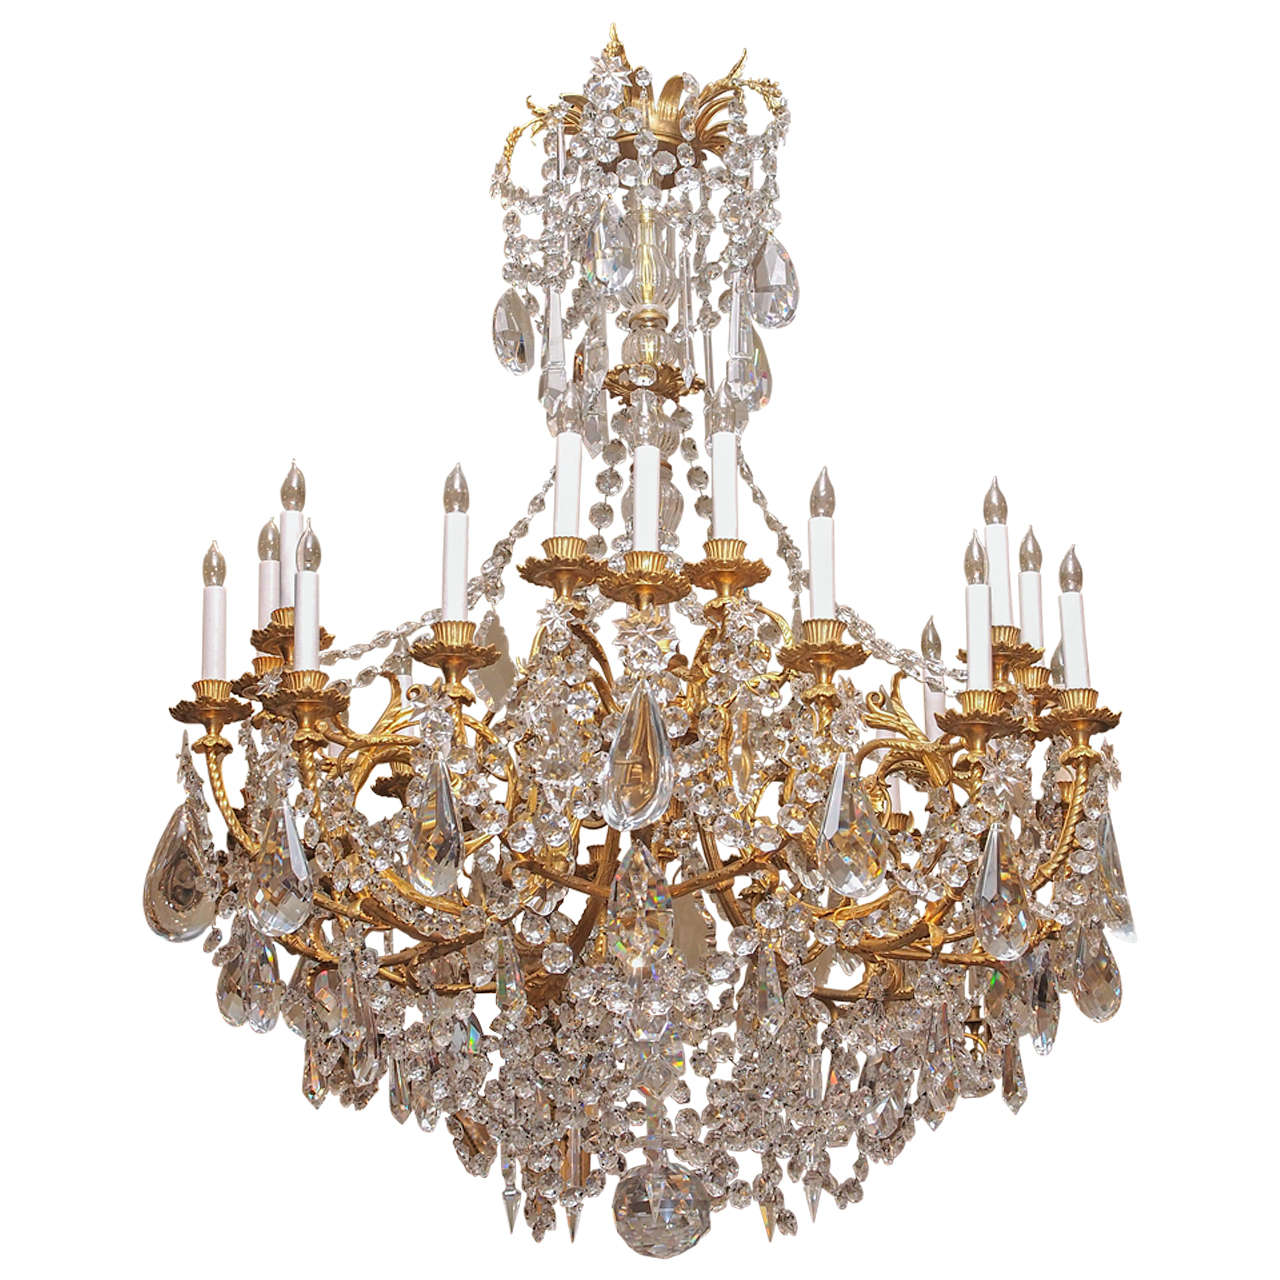 Antique french baccarat and bronze dor twenty four light crystal chandelier at 1stdibs - Lighting and chandeliers ...